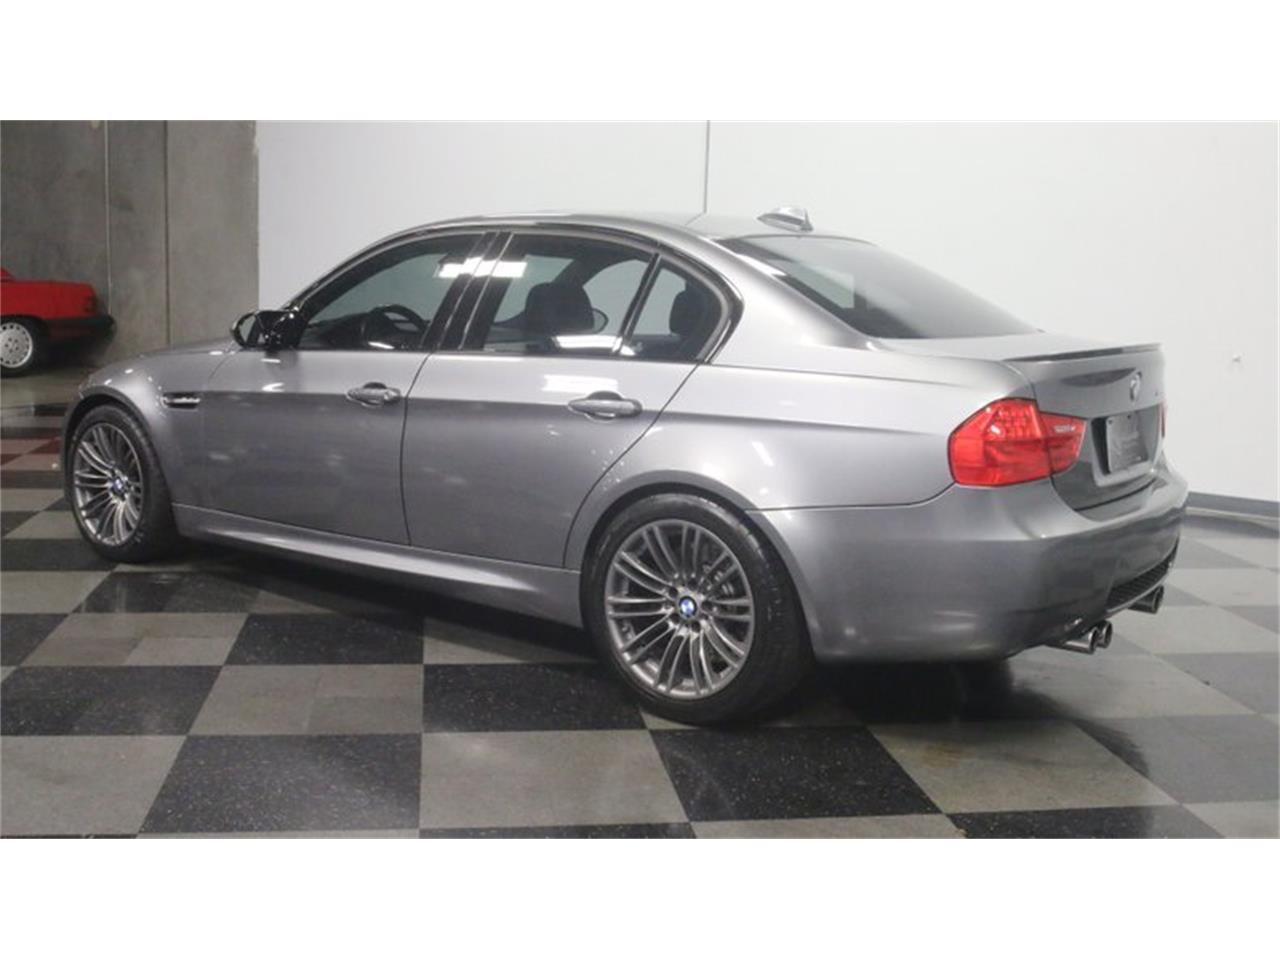 2010 BMW M3 for sale in Lithia Springs, GA – photo 8